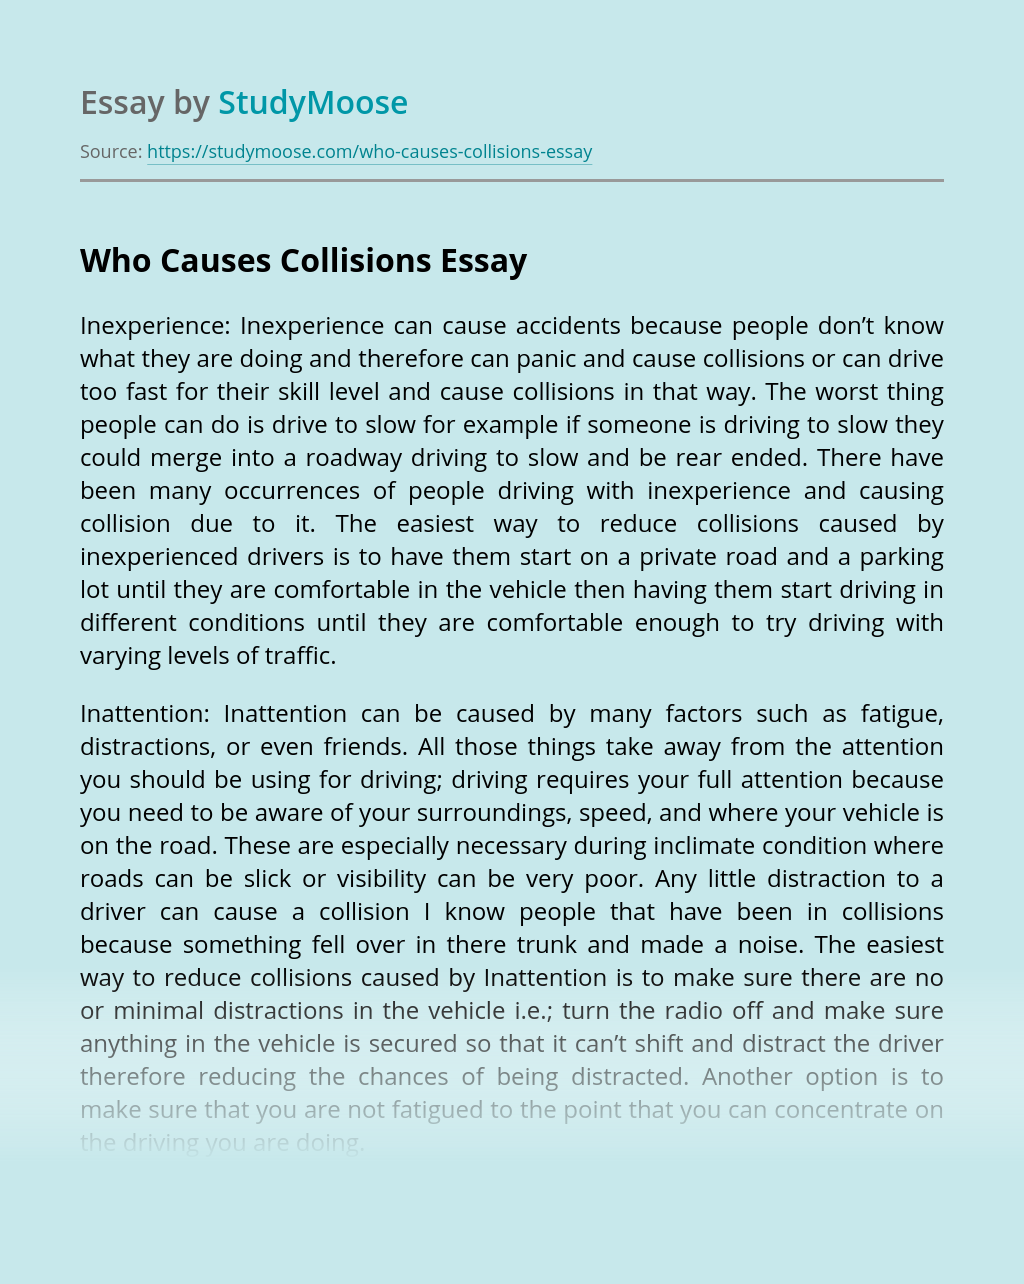 Who Causes Collisions?